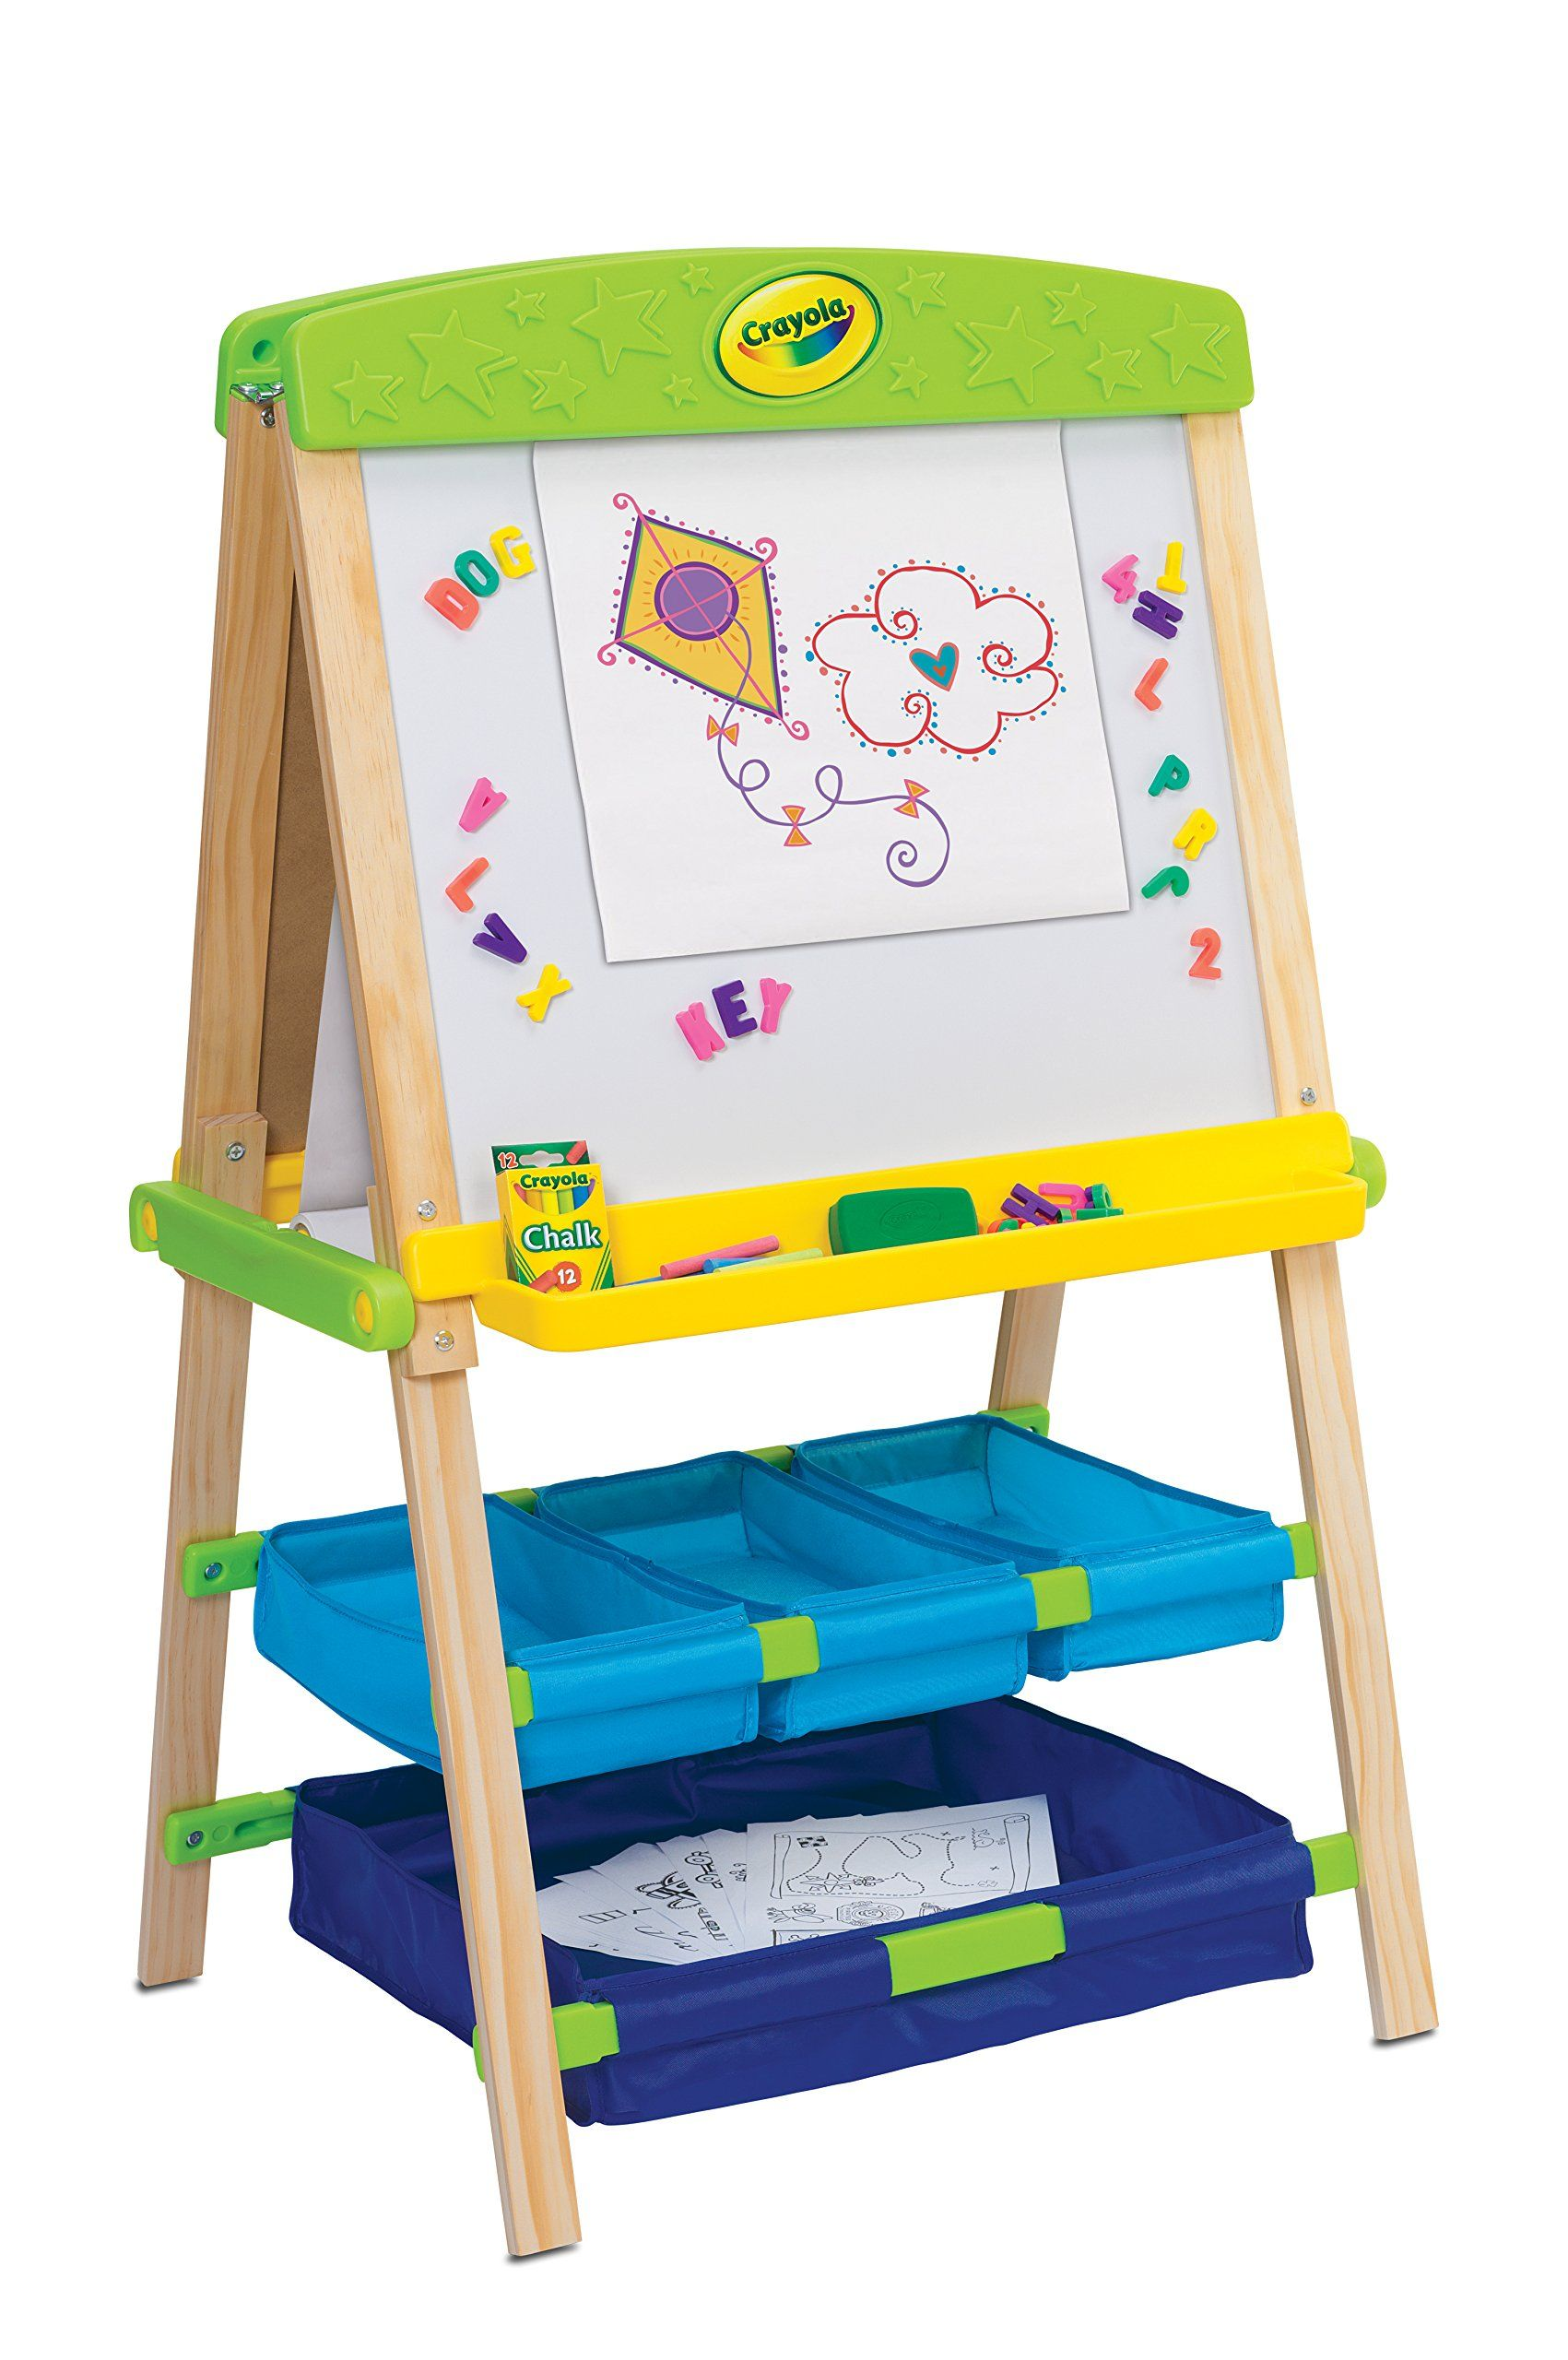 Crayola draw n store wood easel convertible art easel and